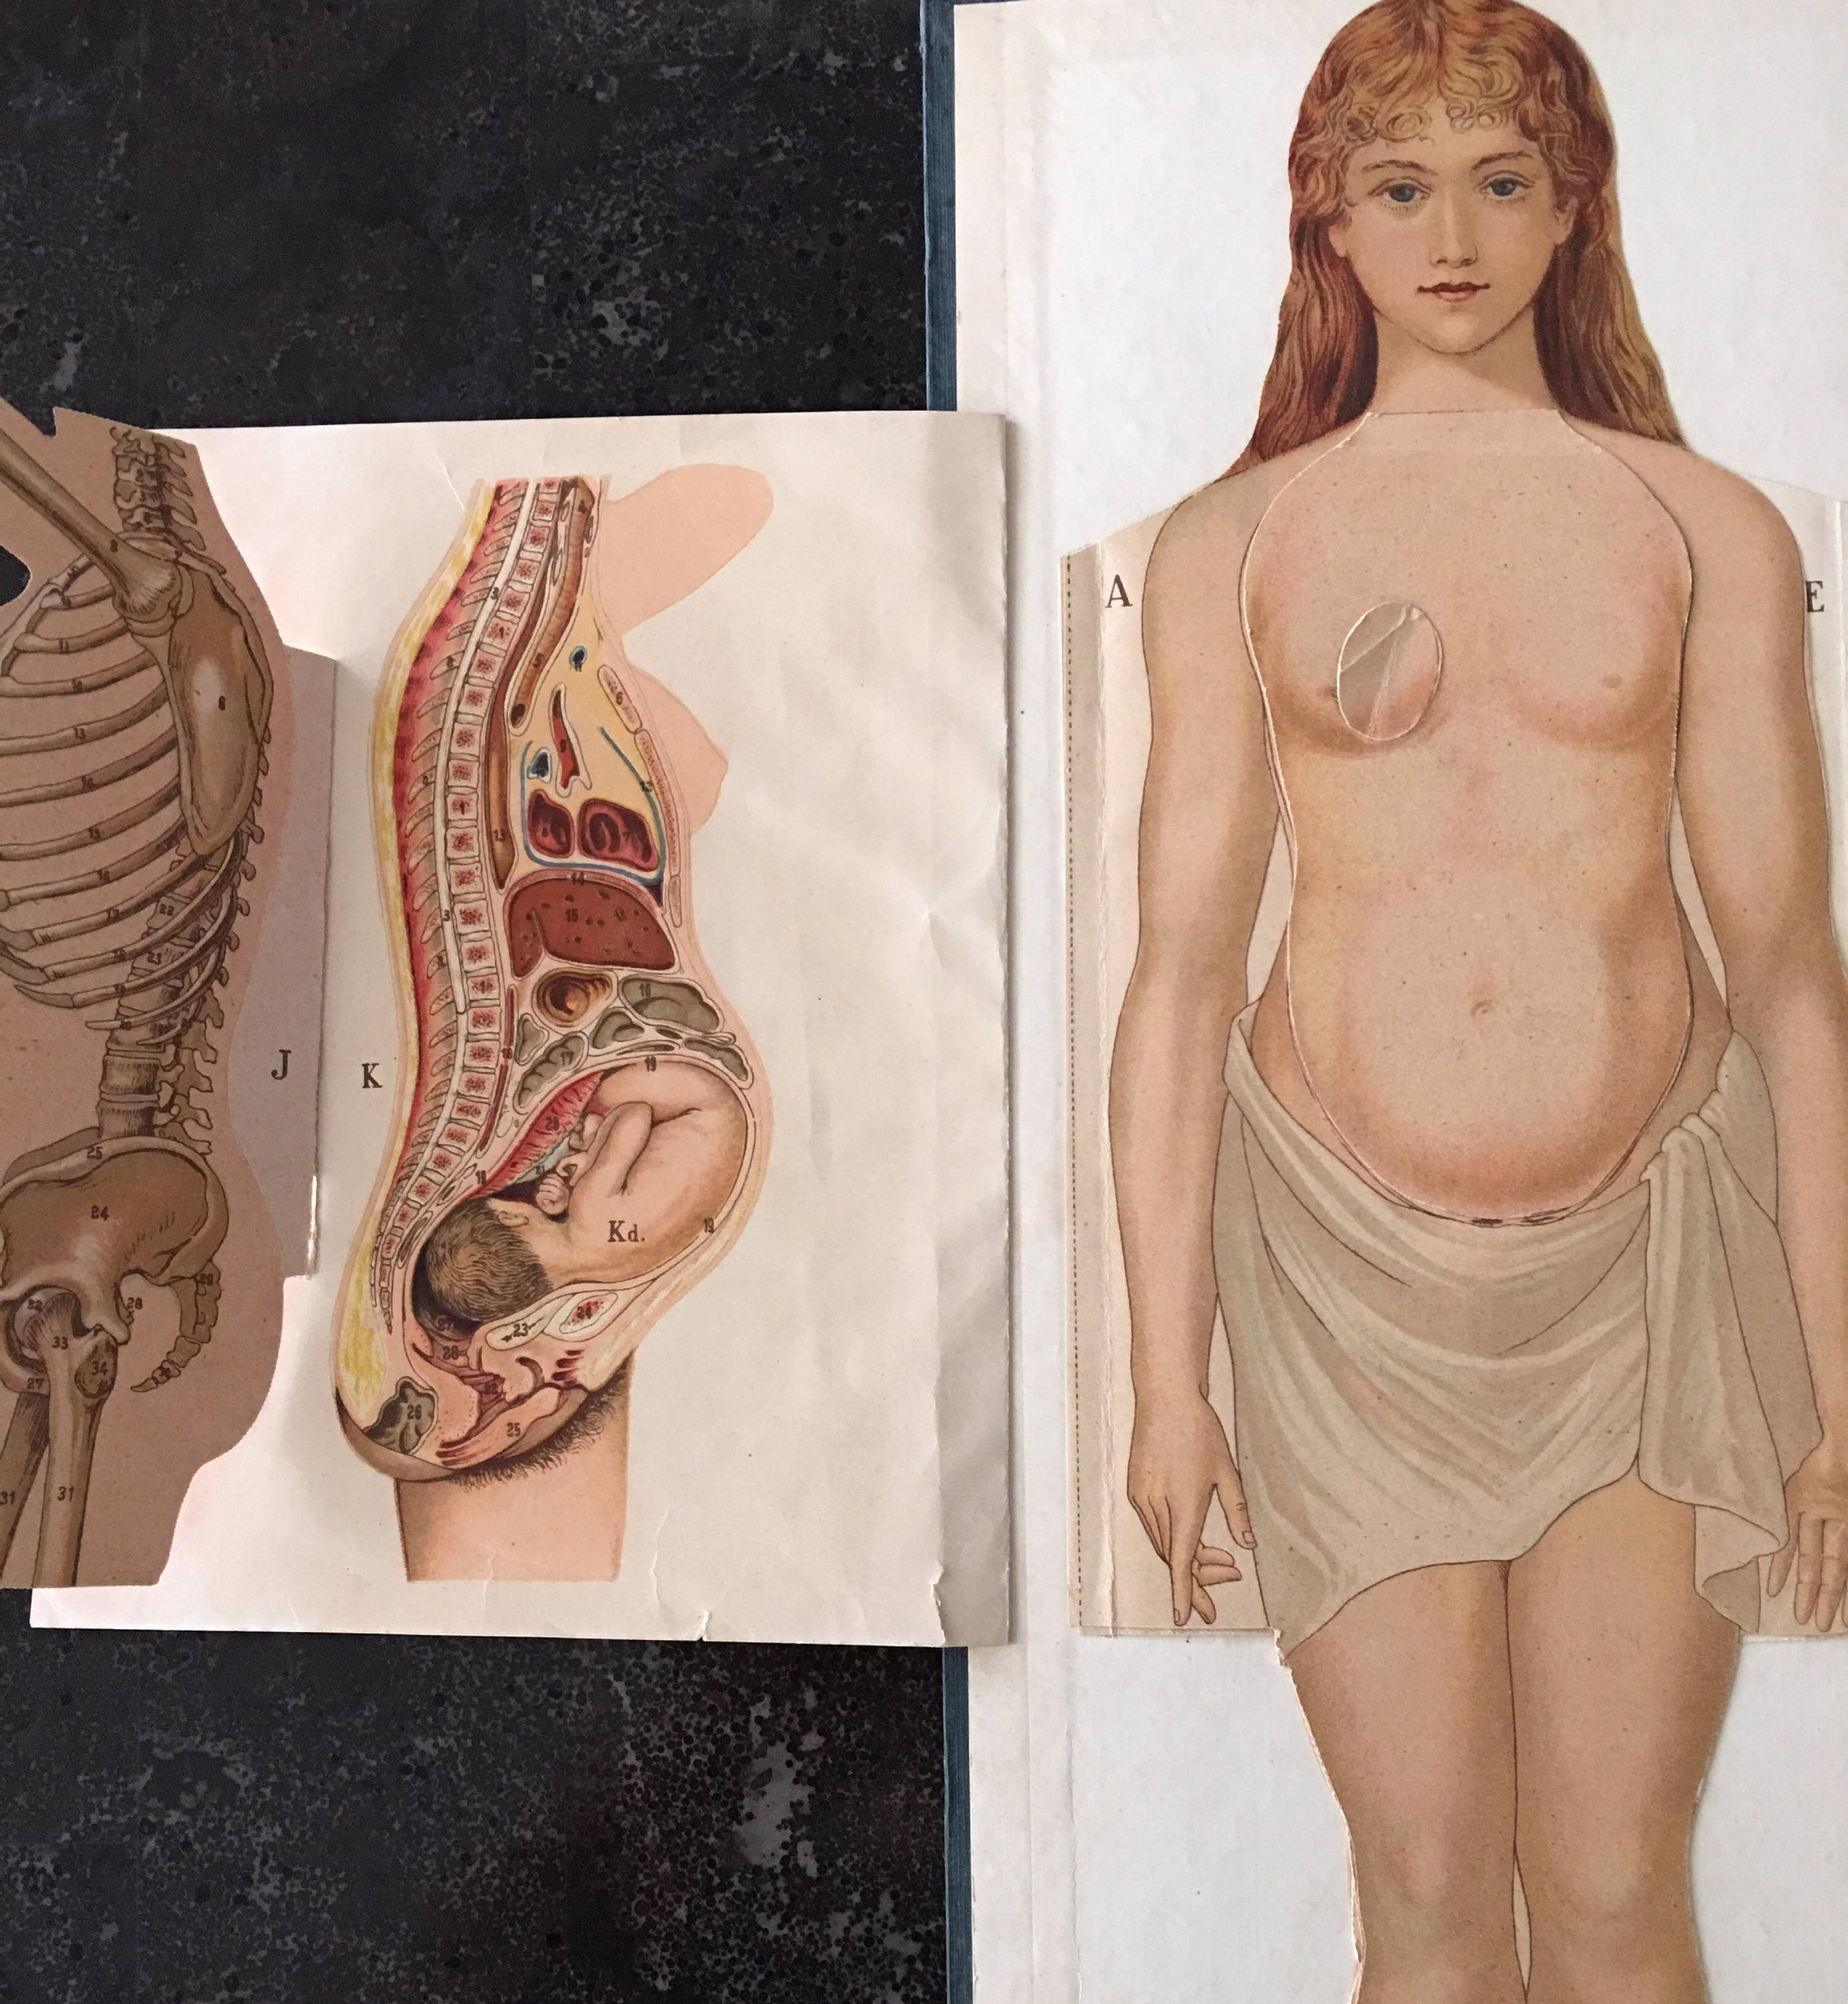 Dr. Minders Anatomical Manikin of the Female Body Book Early 1900s ...